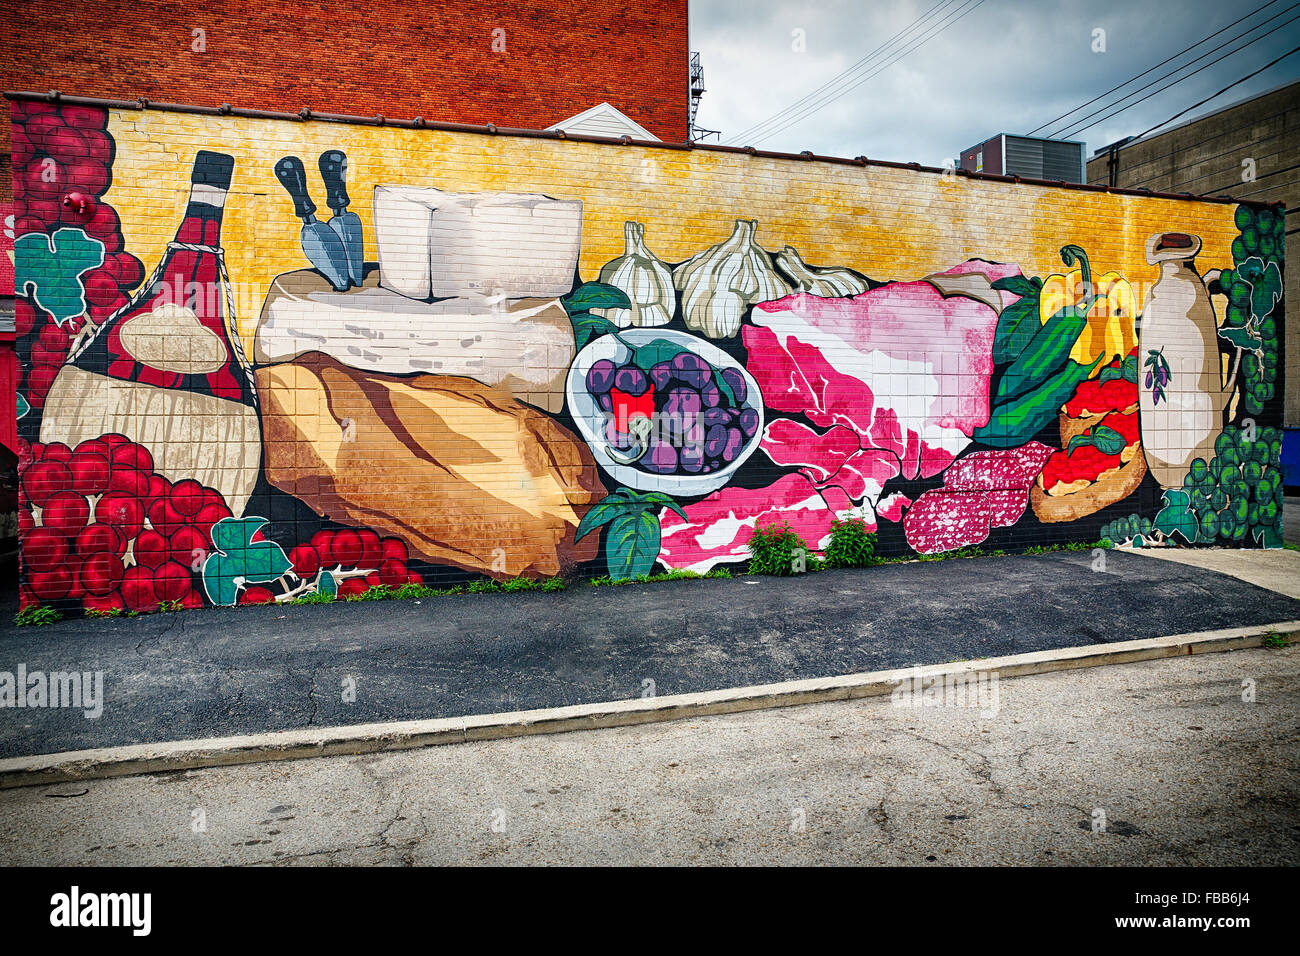 low angle view of a wall mural of market items strip district low angle view of a wall mural of market items strip district pittsburgh pennsylvania